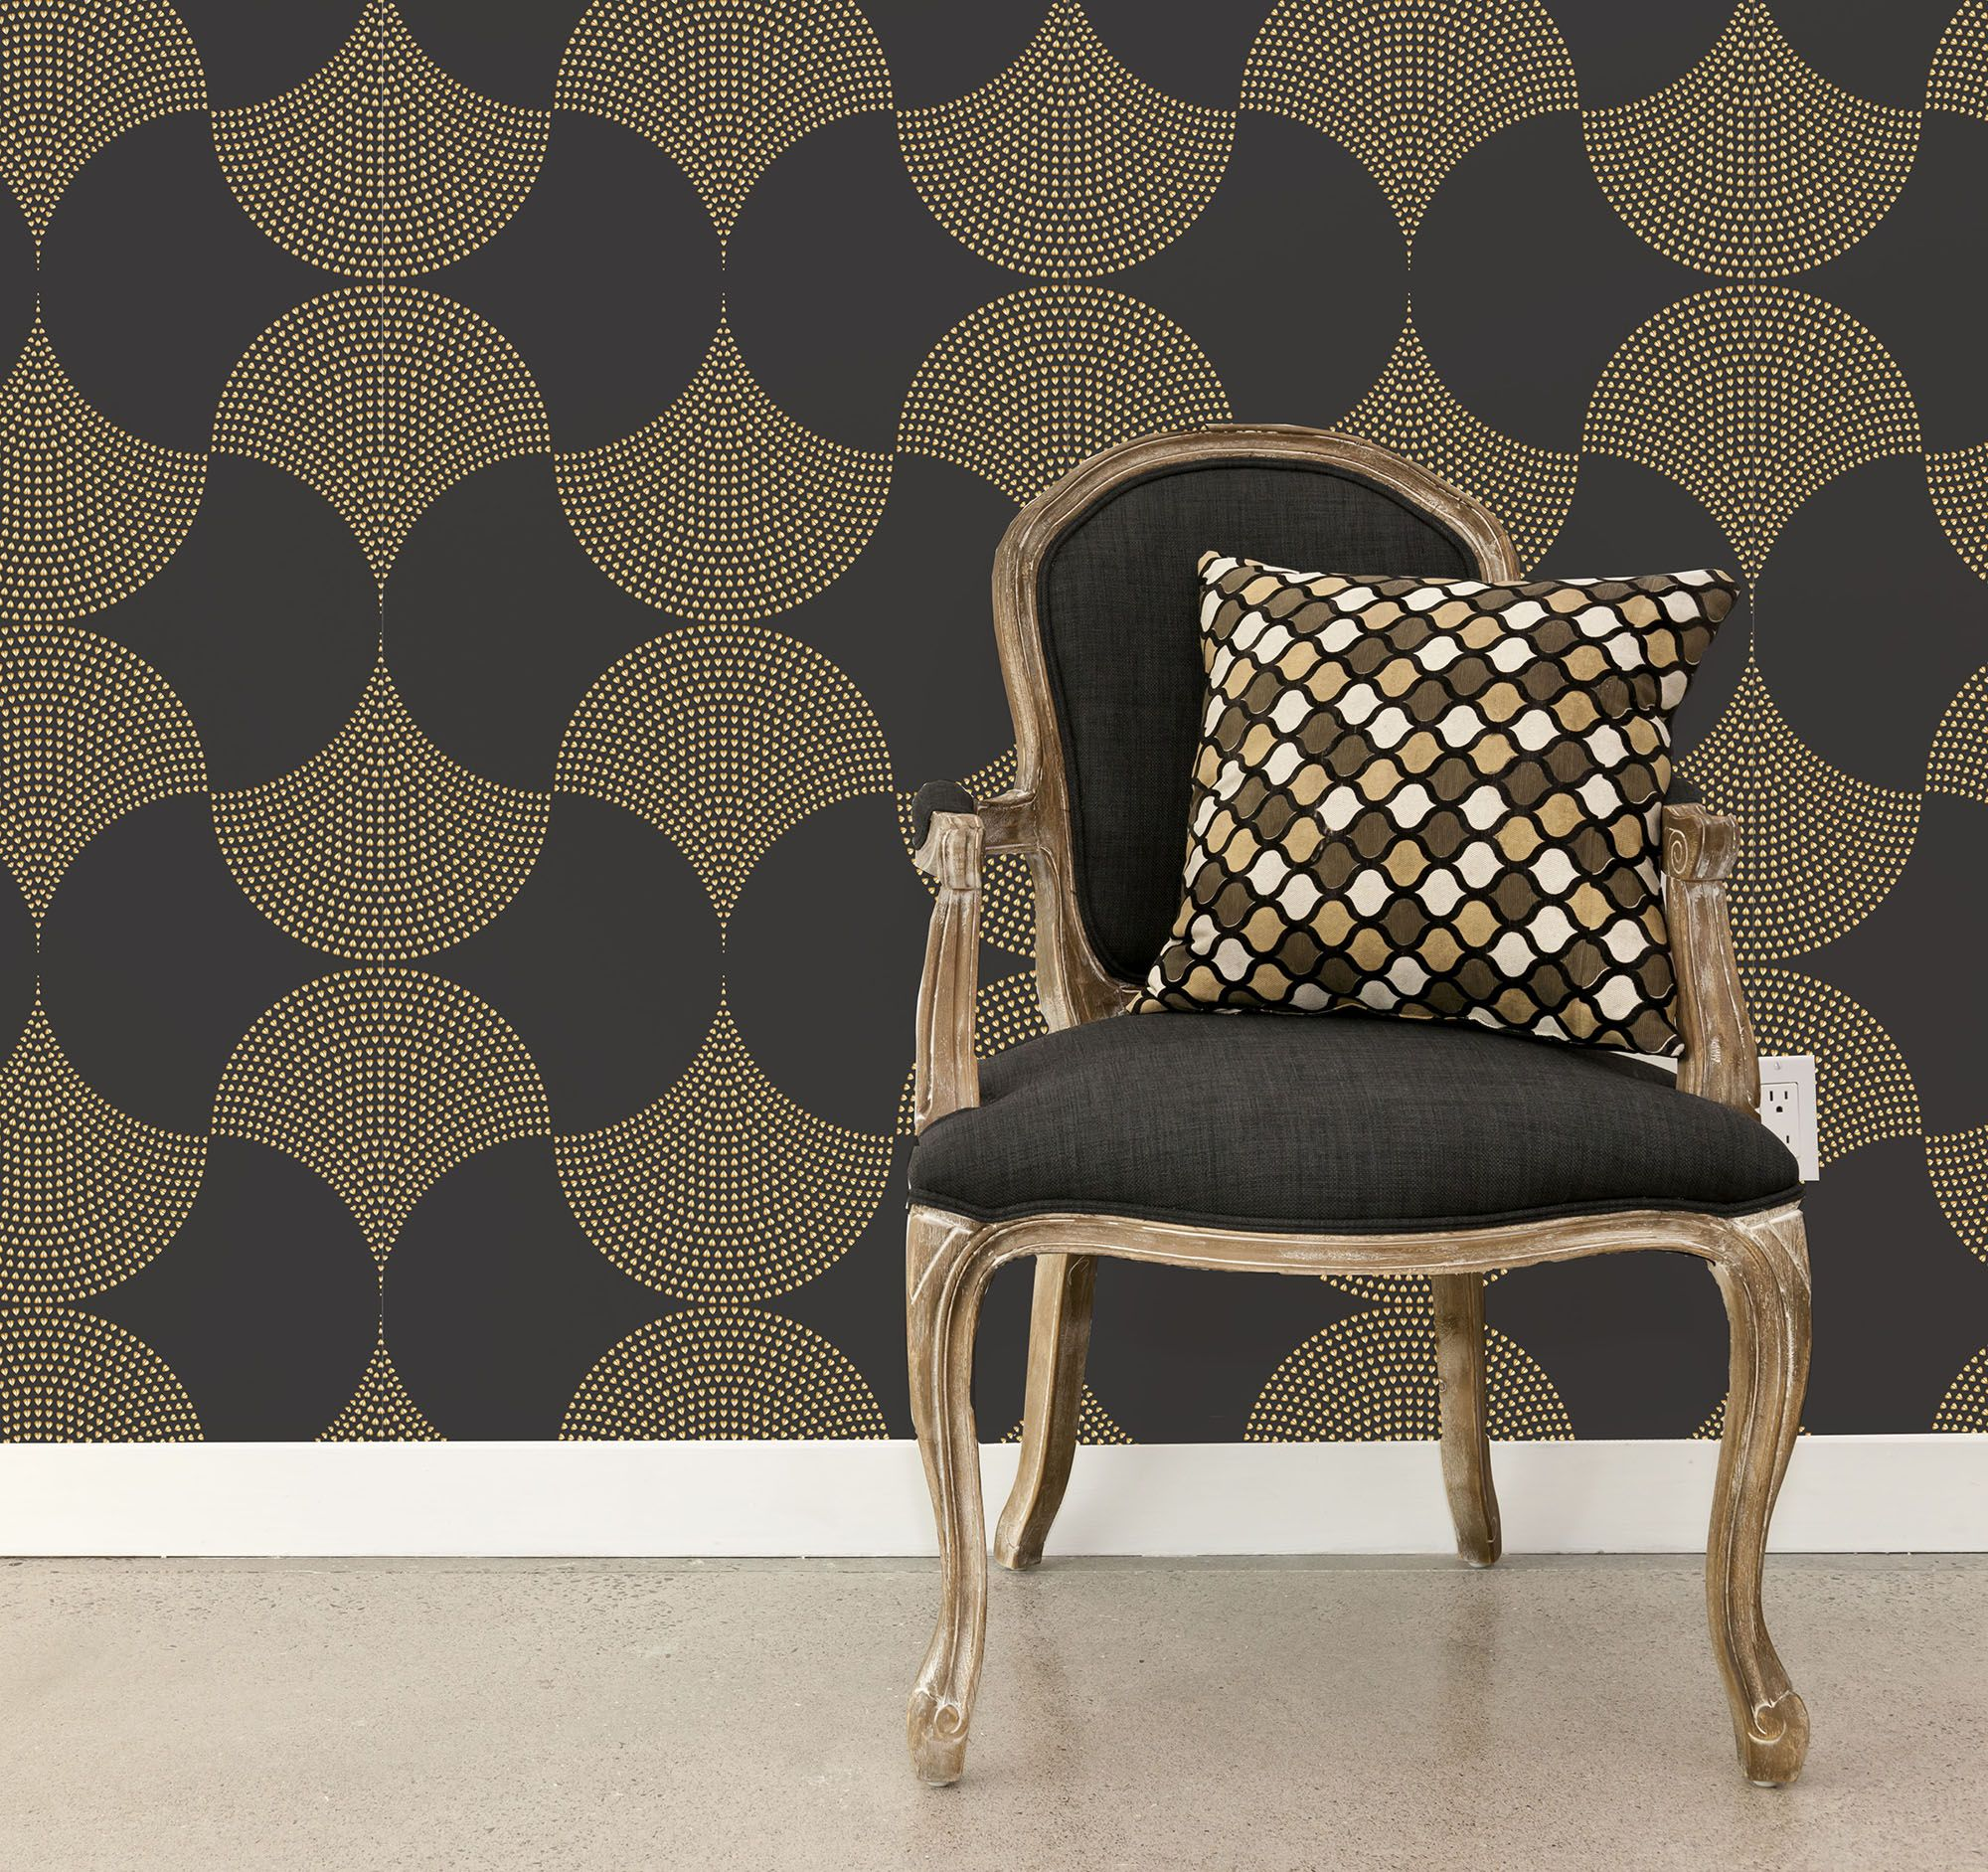 18 Art Deco Wallpaper Ideas Decorating with 1920s Art Deco Wall